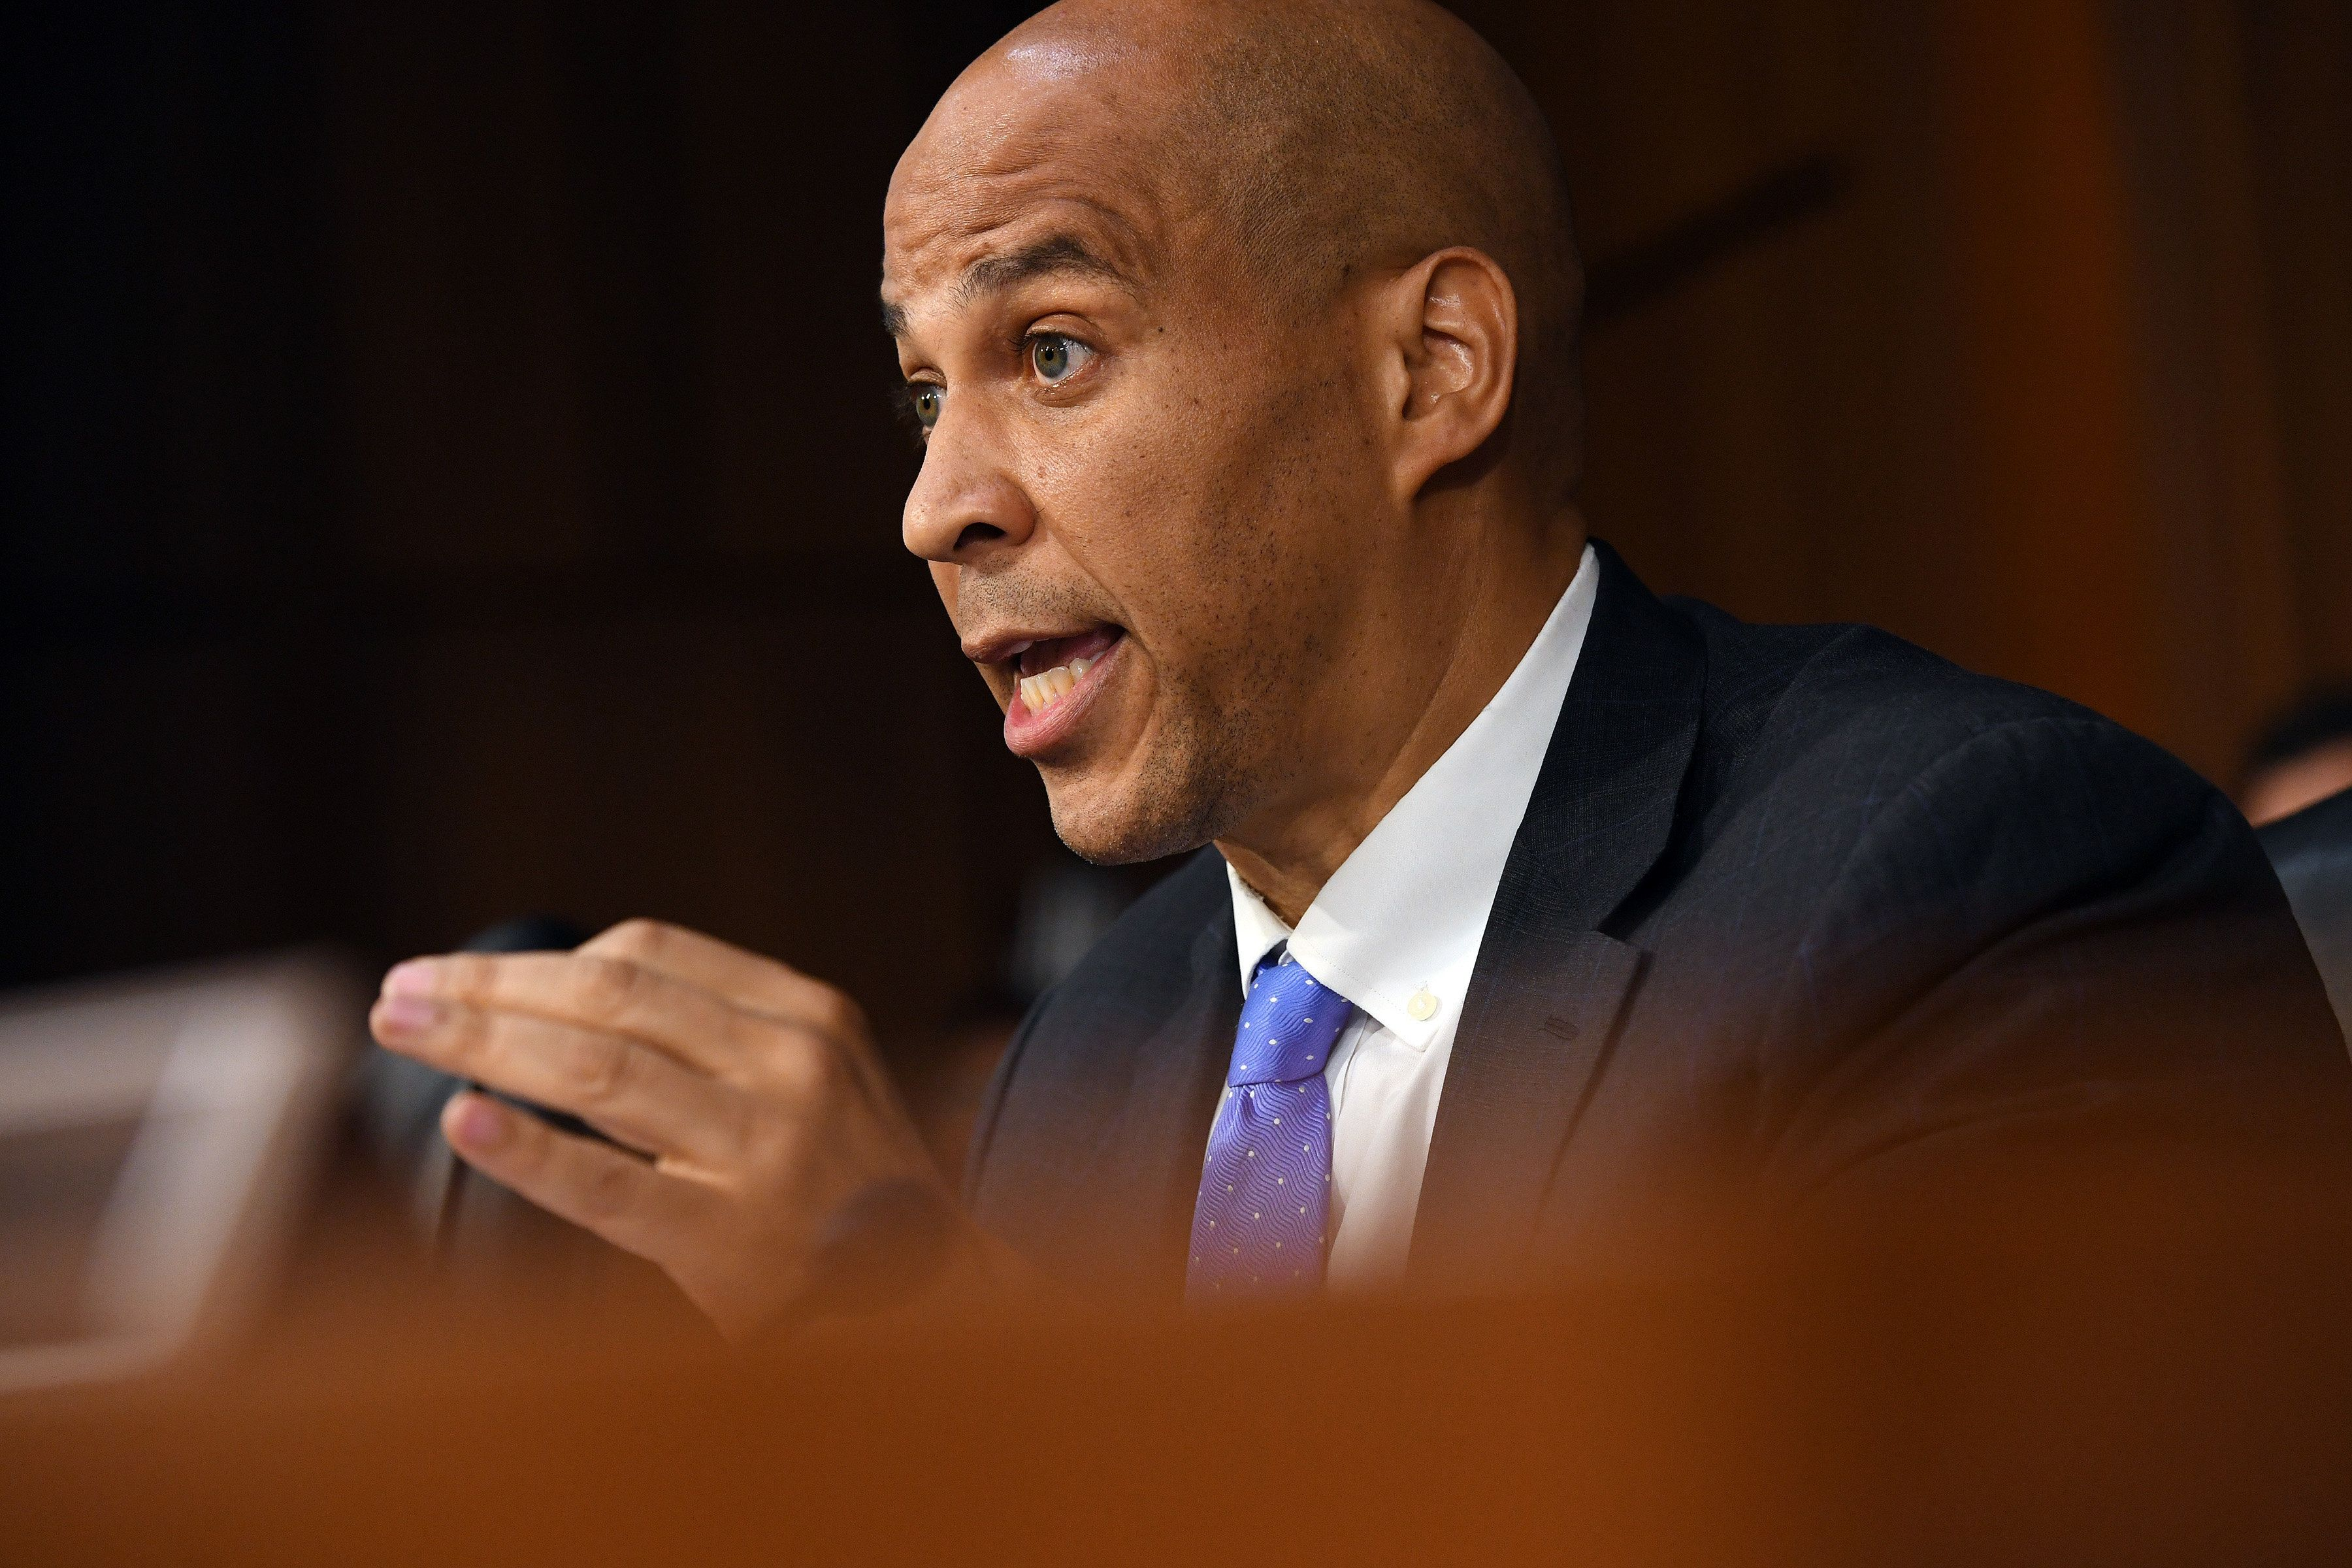 Sen. Cory Booker (D-N.J.) asks Supreme Court nominee Brett Kavanaugh a question during a confirmation hearing on Wednesday.